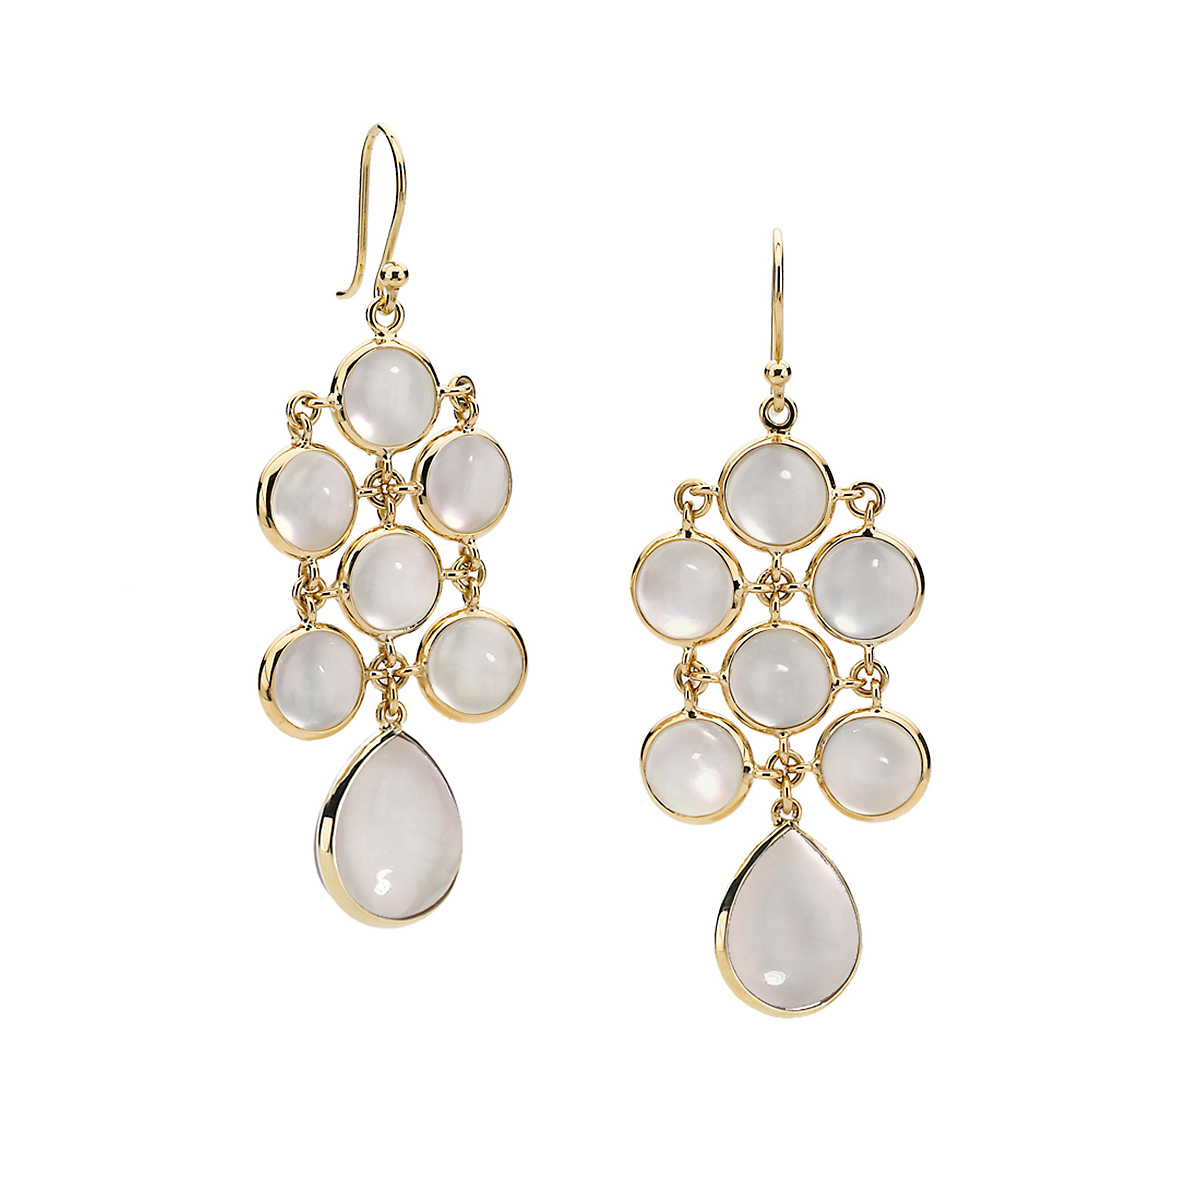 Elizabeth Showers Mother of Pearl & Quartz Juliette Earrings